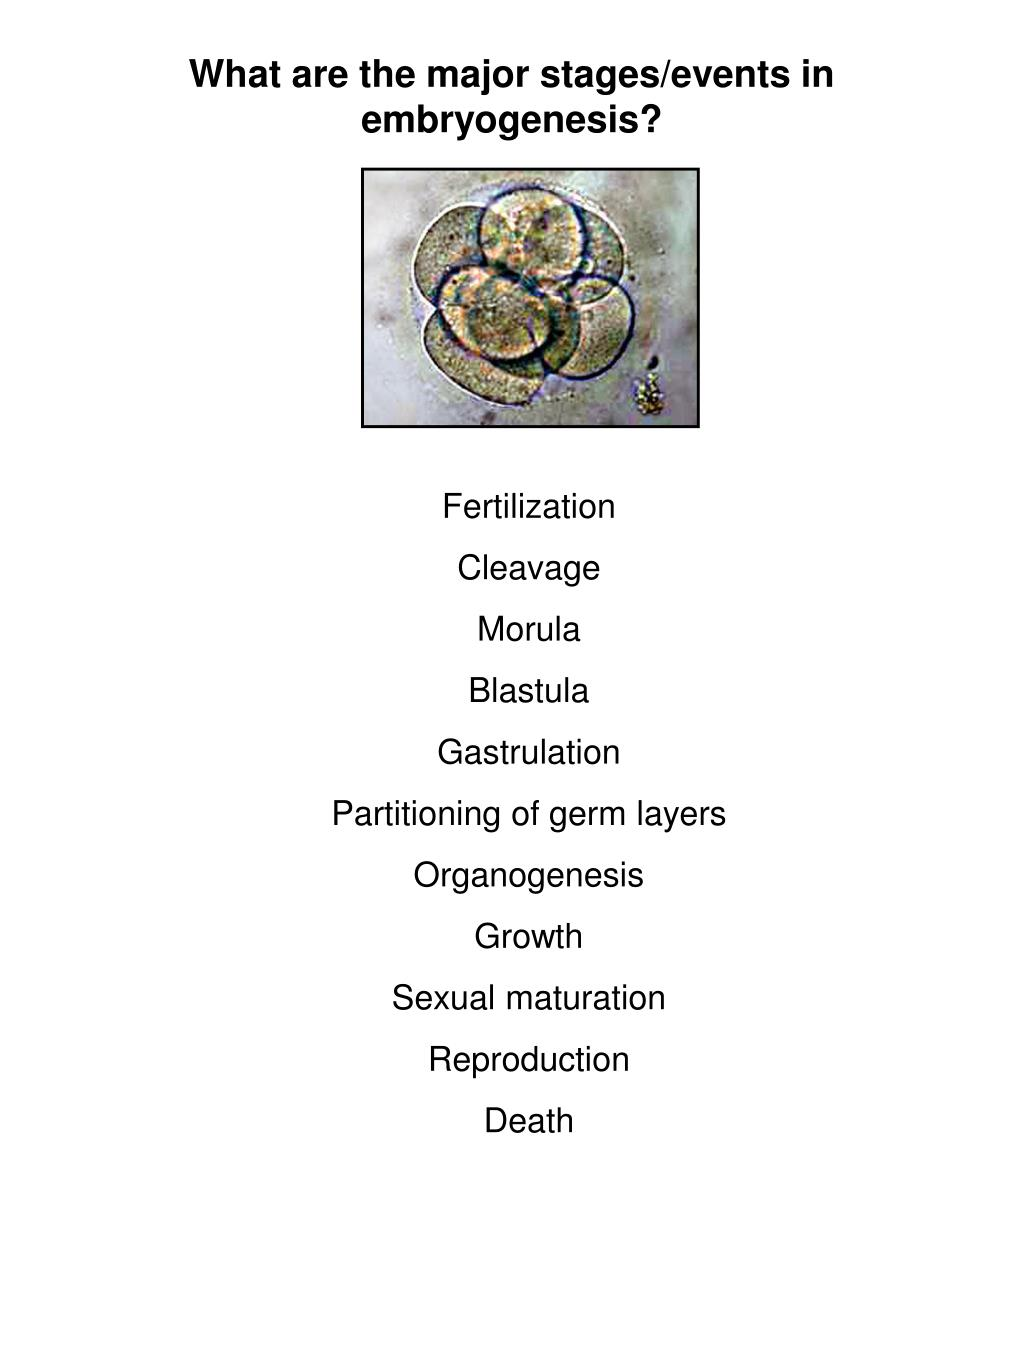 What are the major stages/events in embryogenesis?